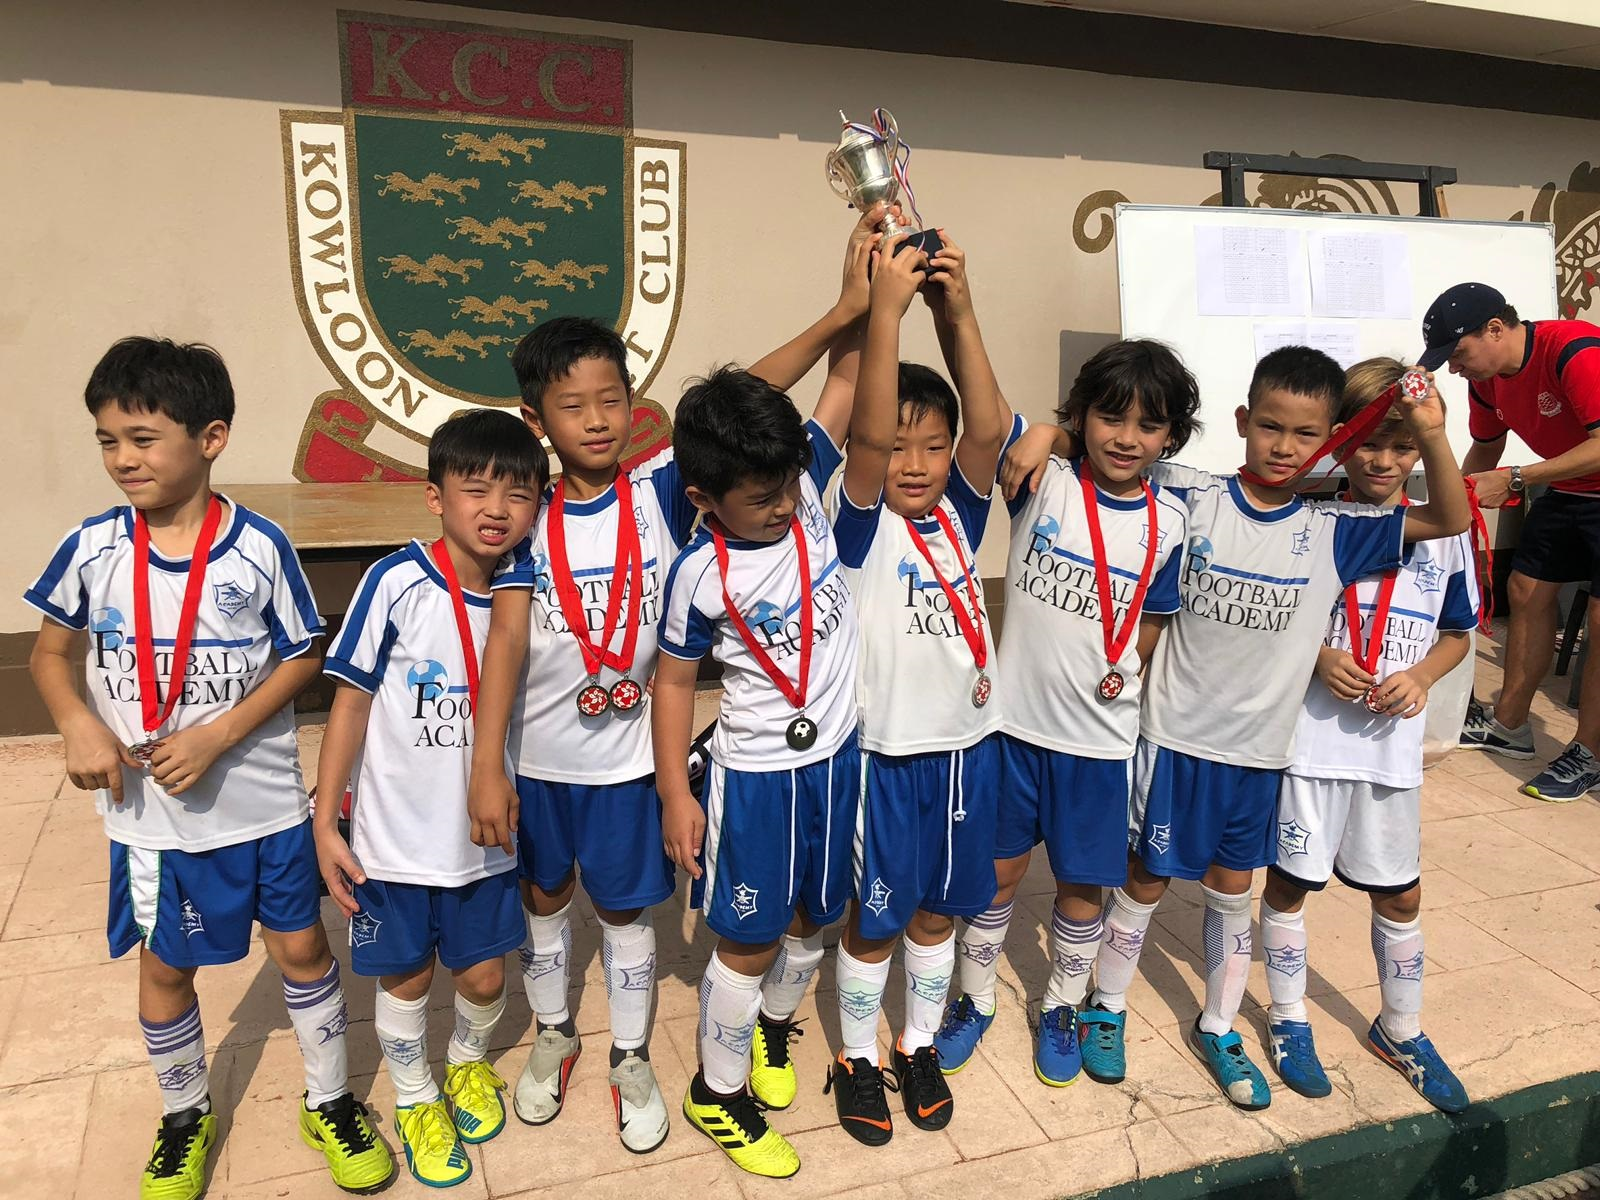 Brilliant win for our U9 boys in the Championship on 24 Nov at the HKJFL U9 Champ.  In 6 matches they conceded zero goals.  Well done boys!